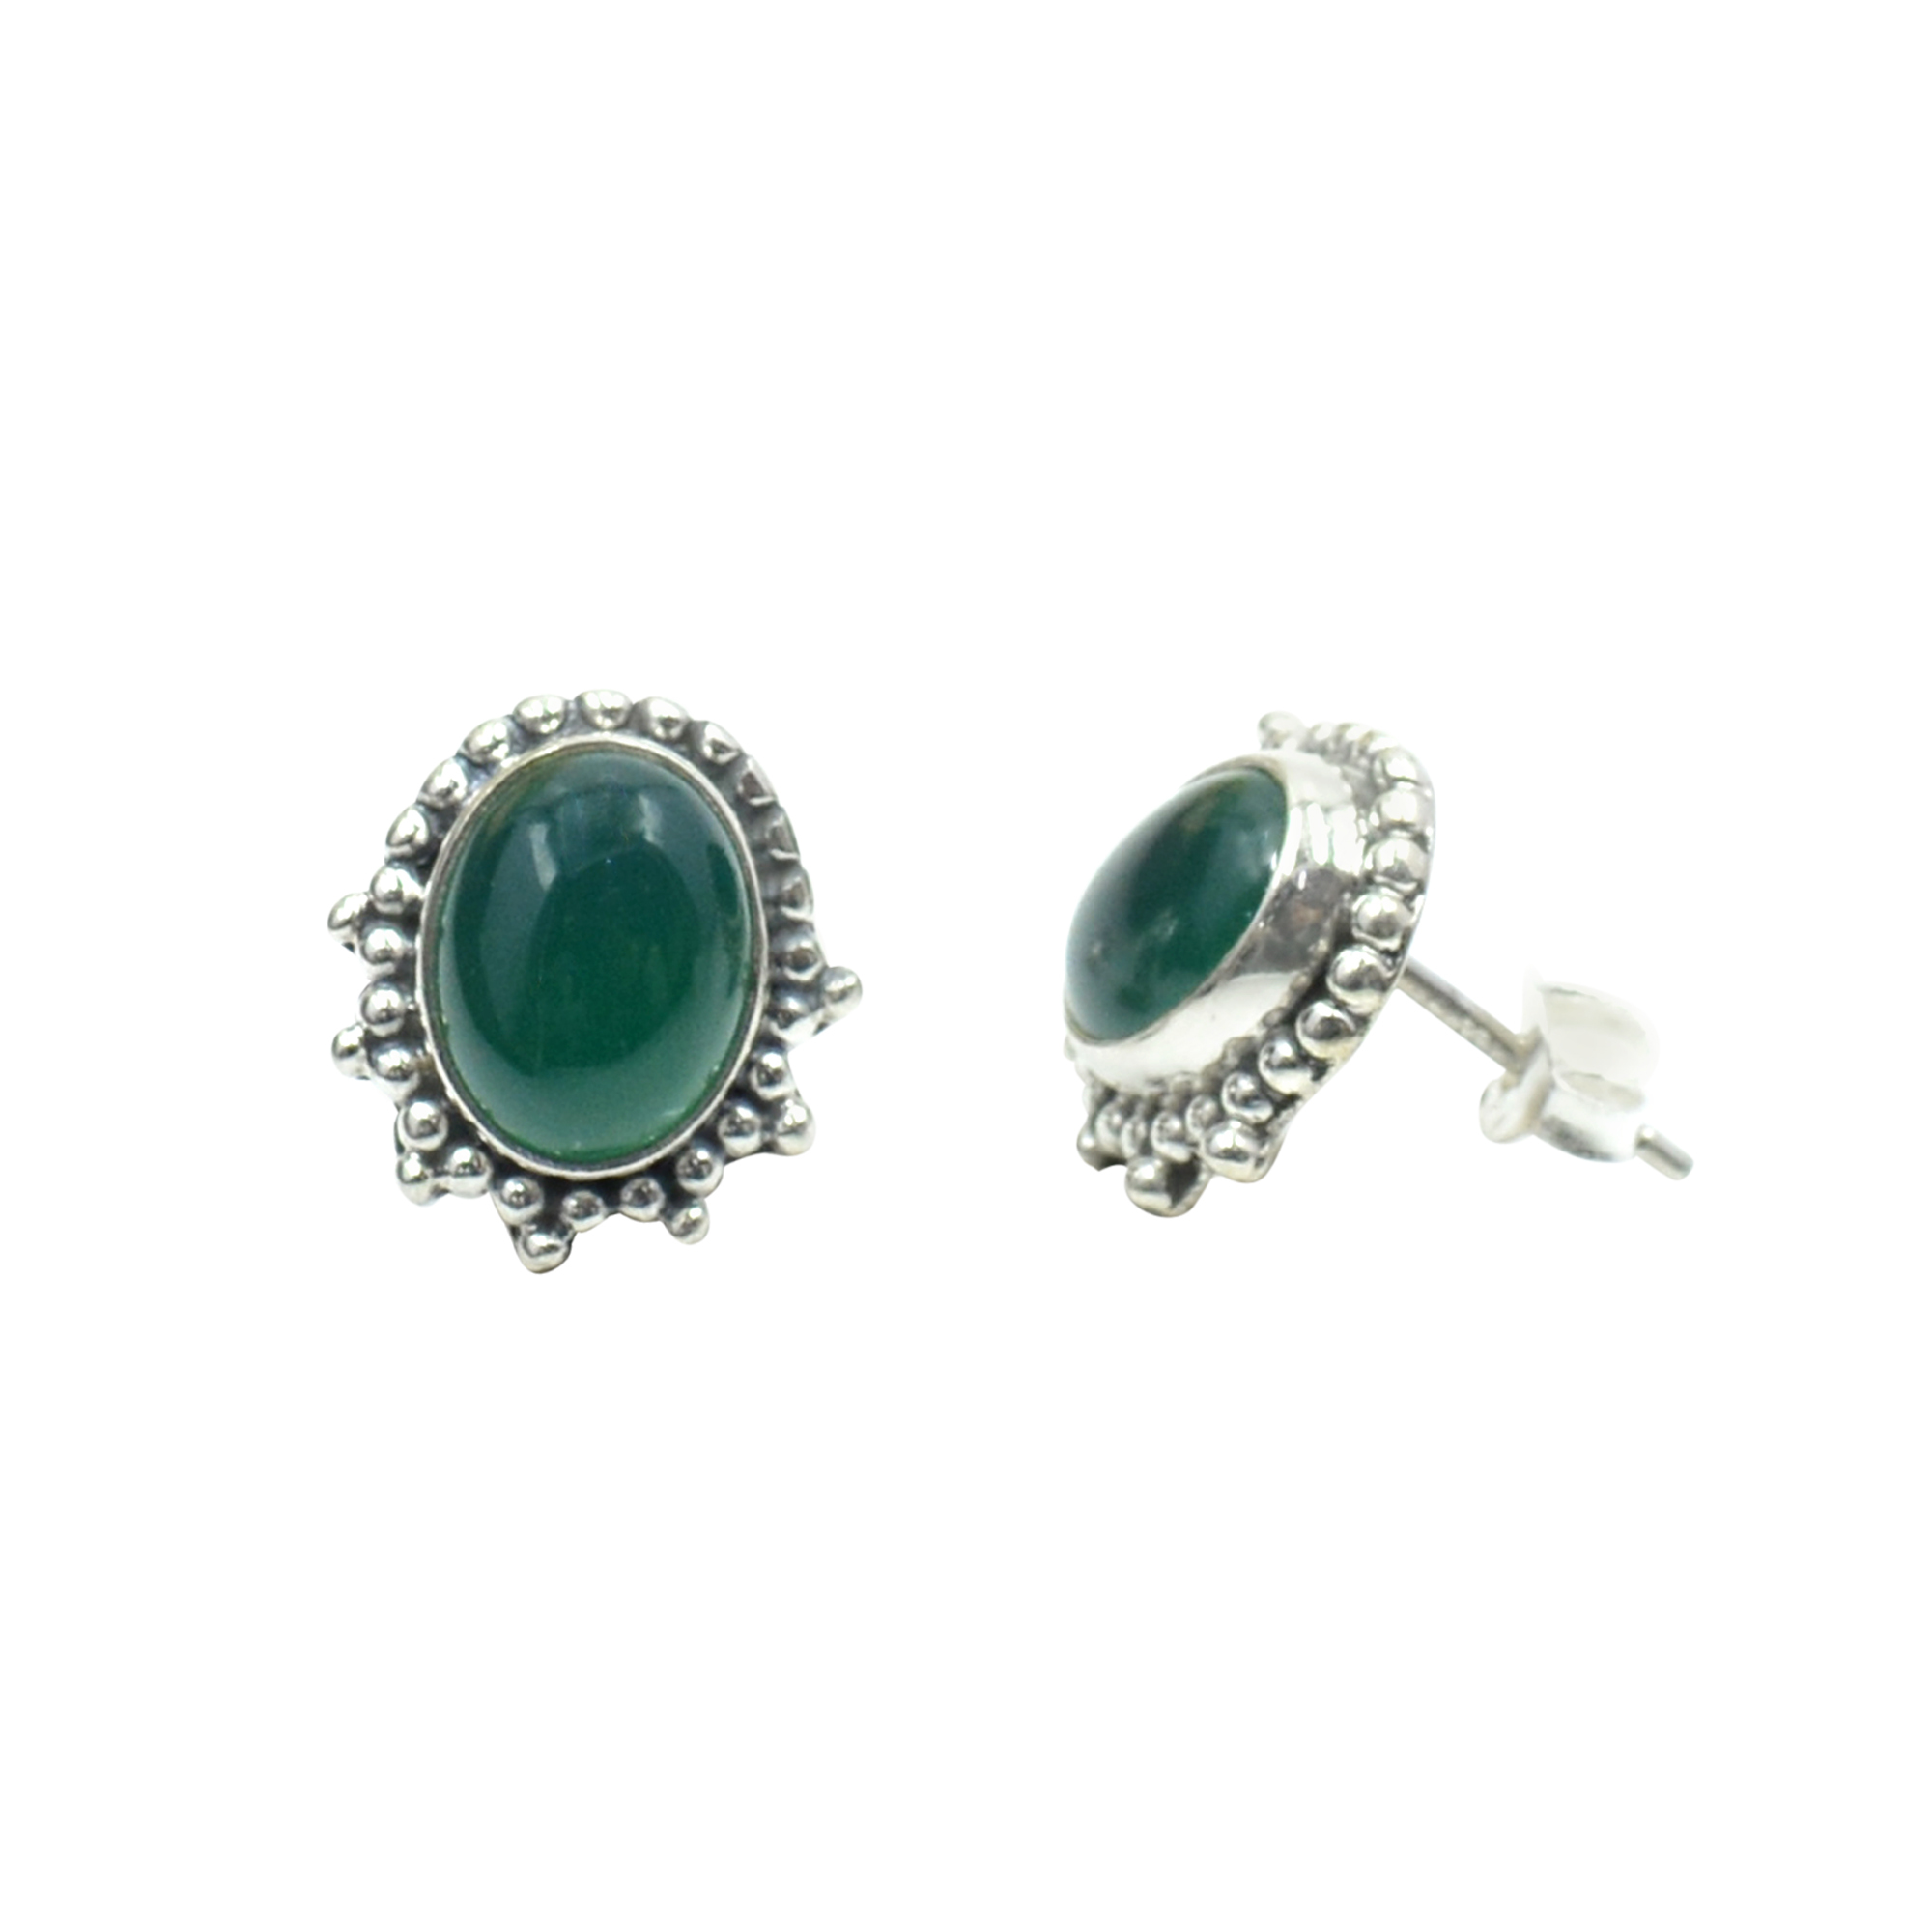 Silvesto India 925 Sterling Silver Natural Green Onyx Oval Shape Antique Gemstone Stud Earring For Women